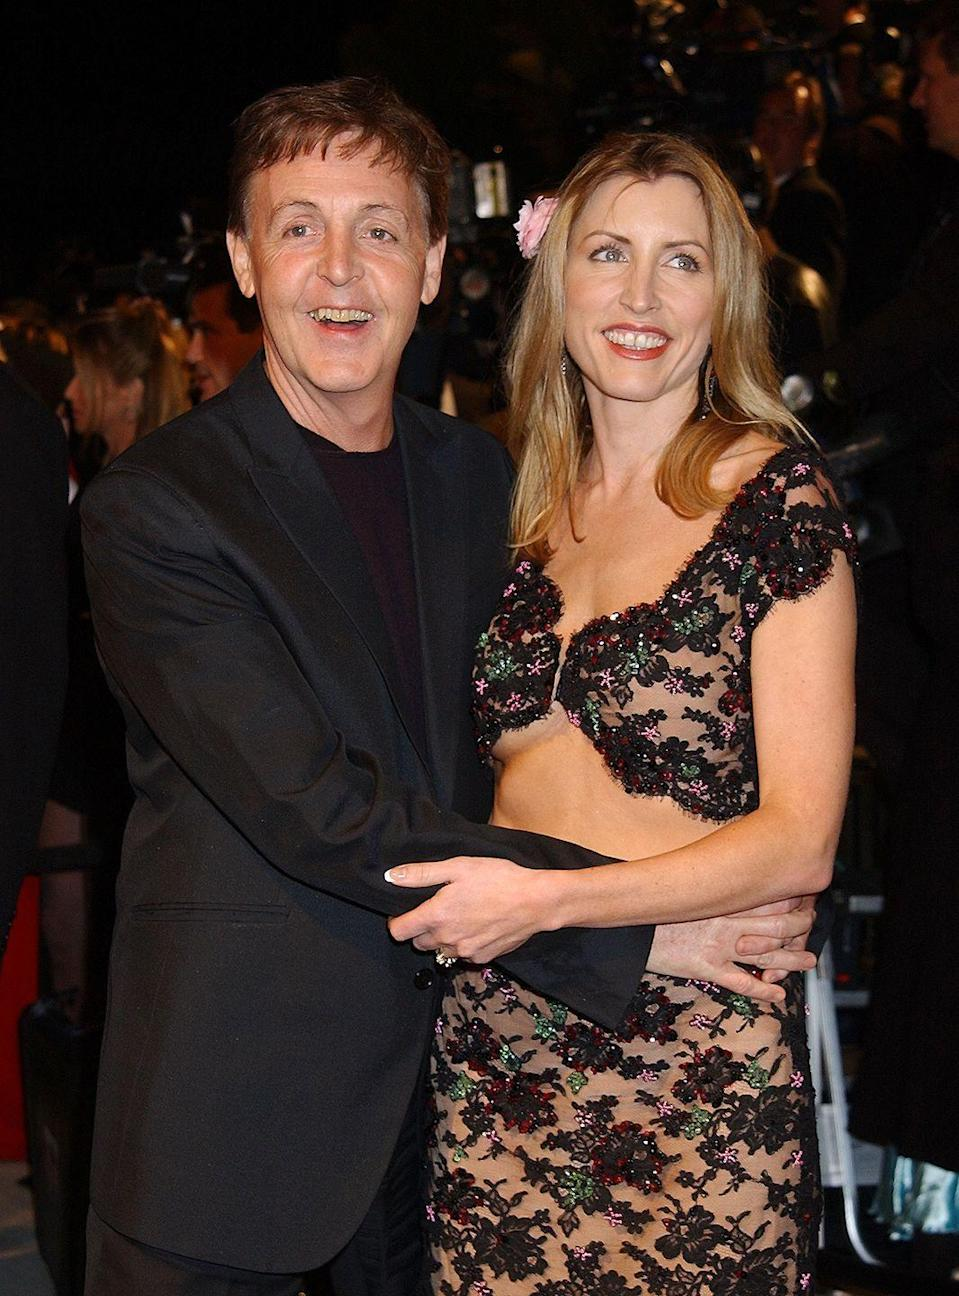 "<p>The second wedding for Paul McCartney and Heather Mills, held at a remote castle in Glaslough, Ireland, cost the couple $3 million. Over 300 friends and family attended the event that strictly catered <a href=""https://www.billboard.com/articles/news/75451/paul-mccartney-married-in-ireland"" rel=""nofollow noopener"" target=""_blank"" data-ylk=""slk:only vegetarian options"" class=""link rapid-noclick-resp"">only vegetarian options</a> to its guests. The couple split in 2008. </p>"